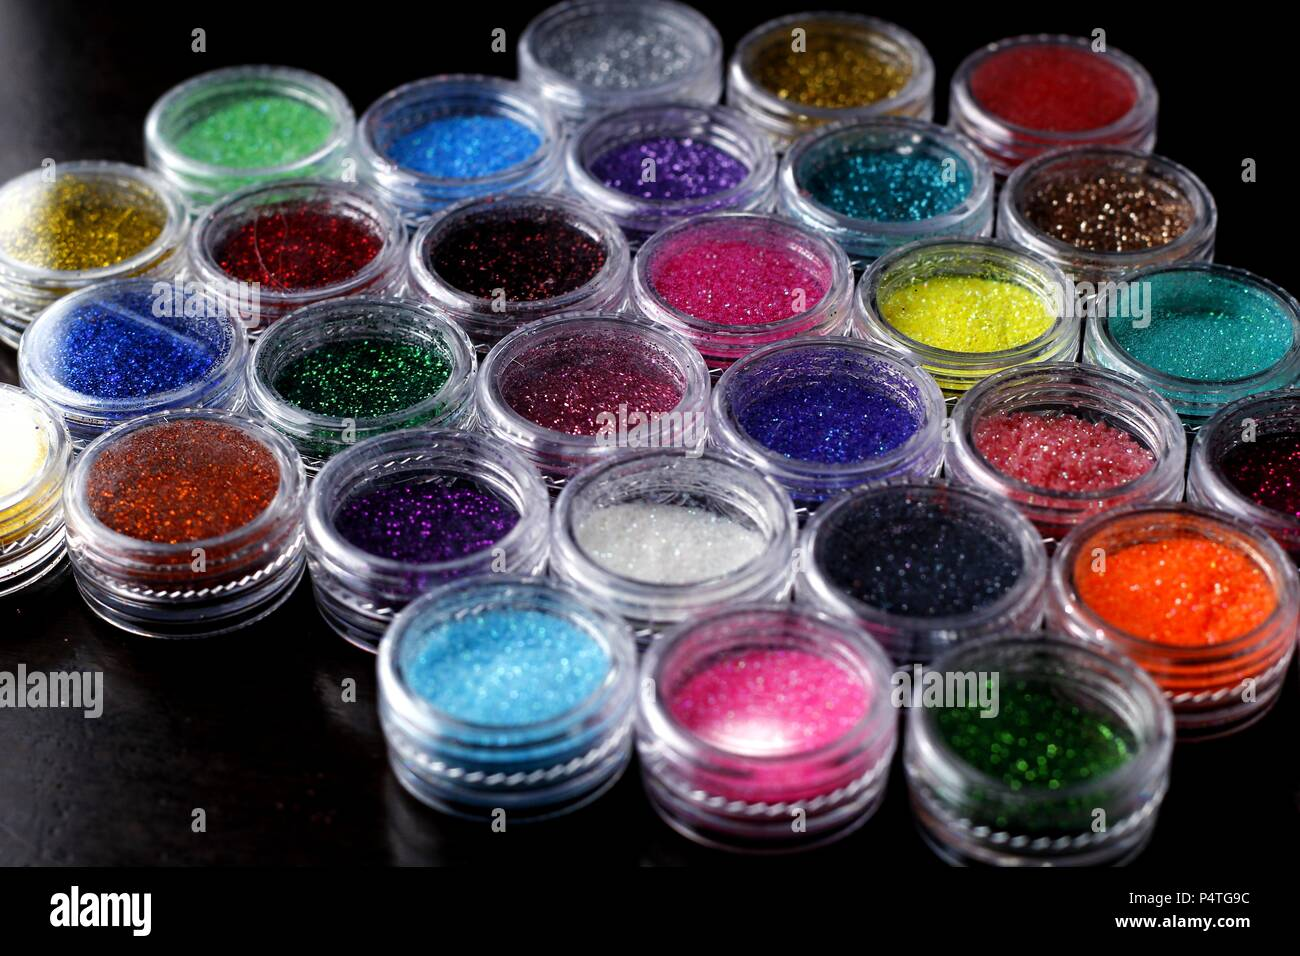 Photo of assorted colorful nail polish glitters - Stock Image